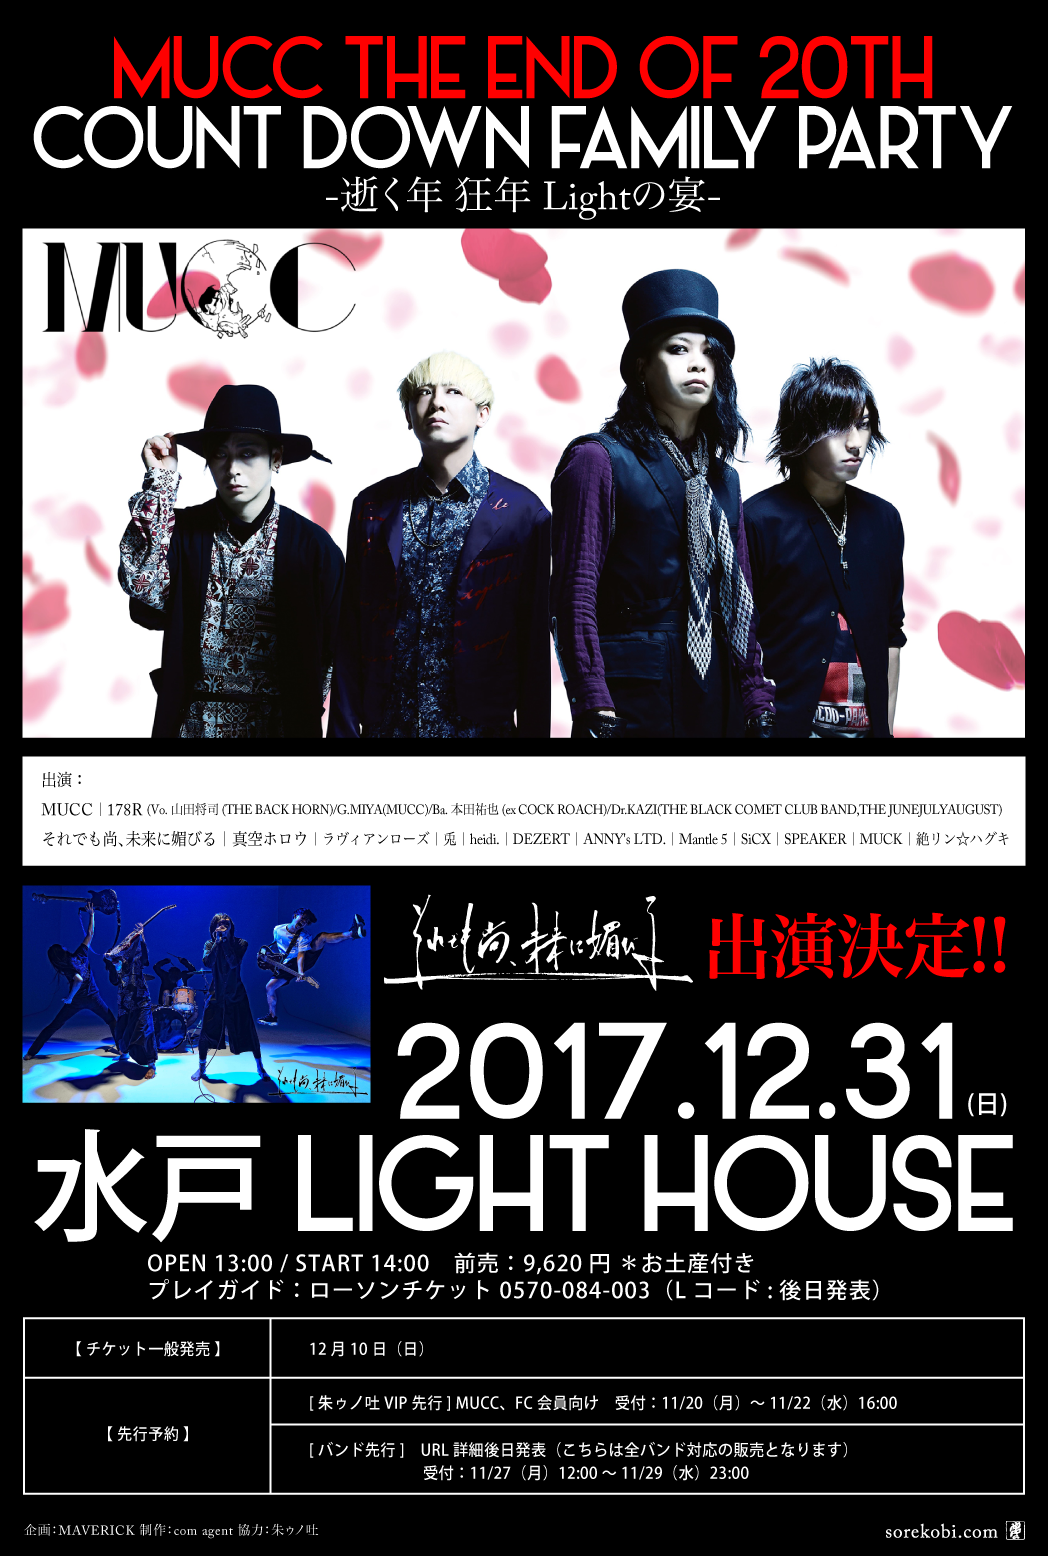 MUCC THE END OF 20TH COUNT DOWN FAMILY PARTY -逝く年 狂年 Lightの宴-